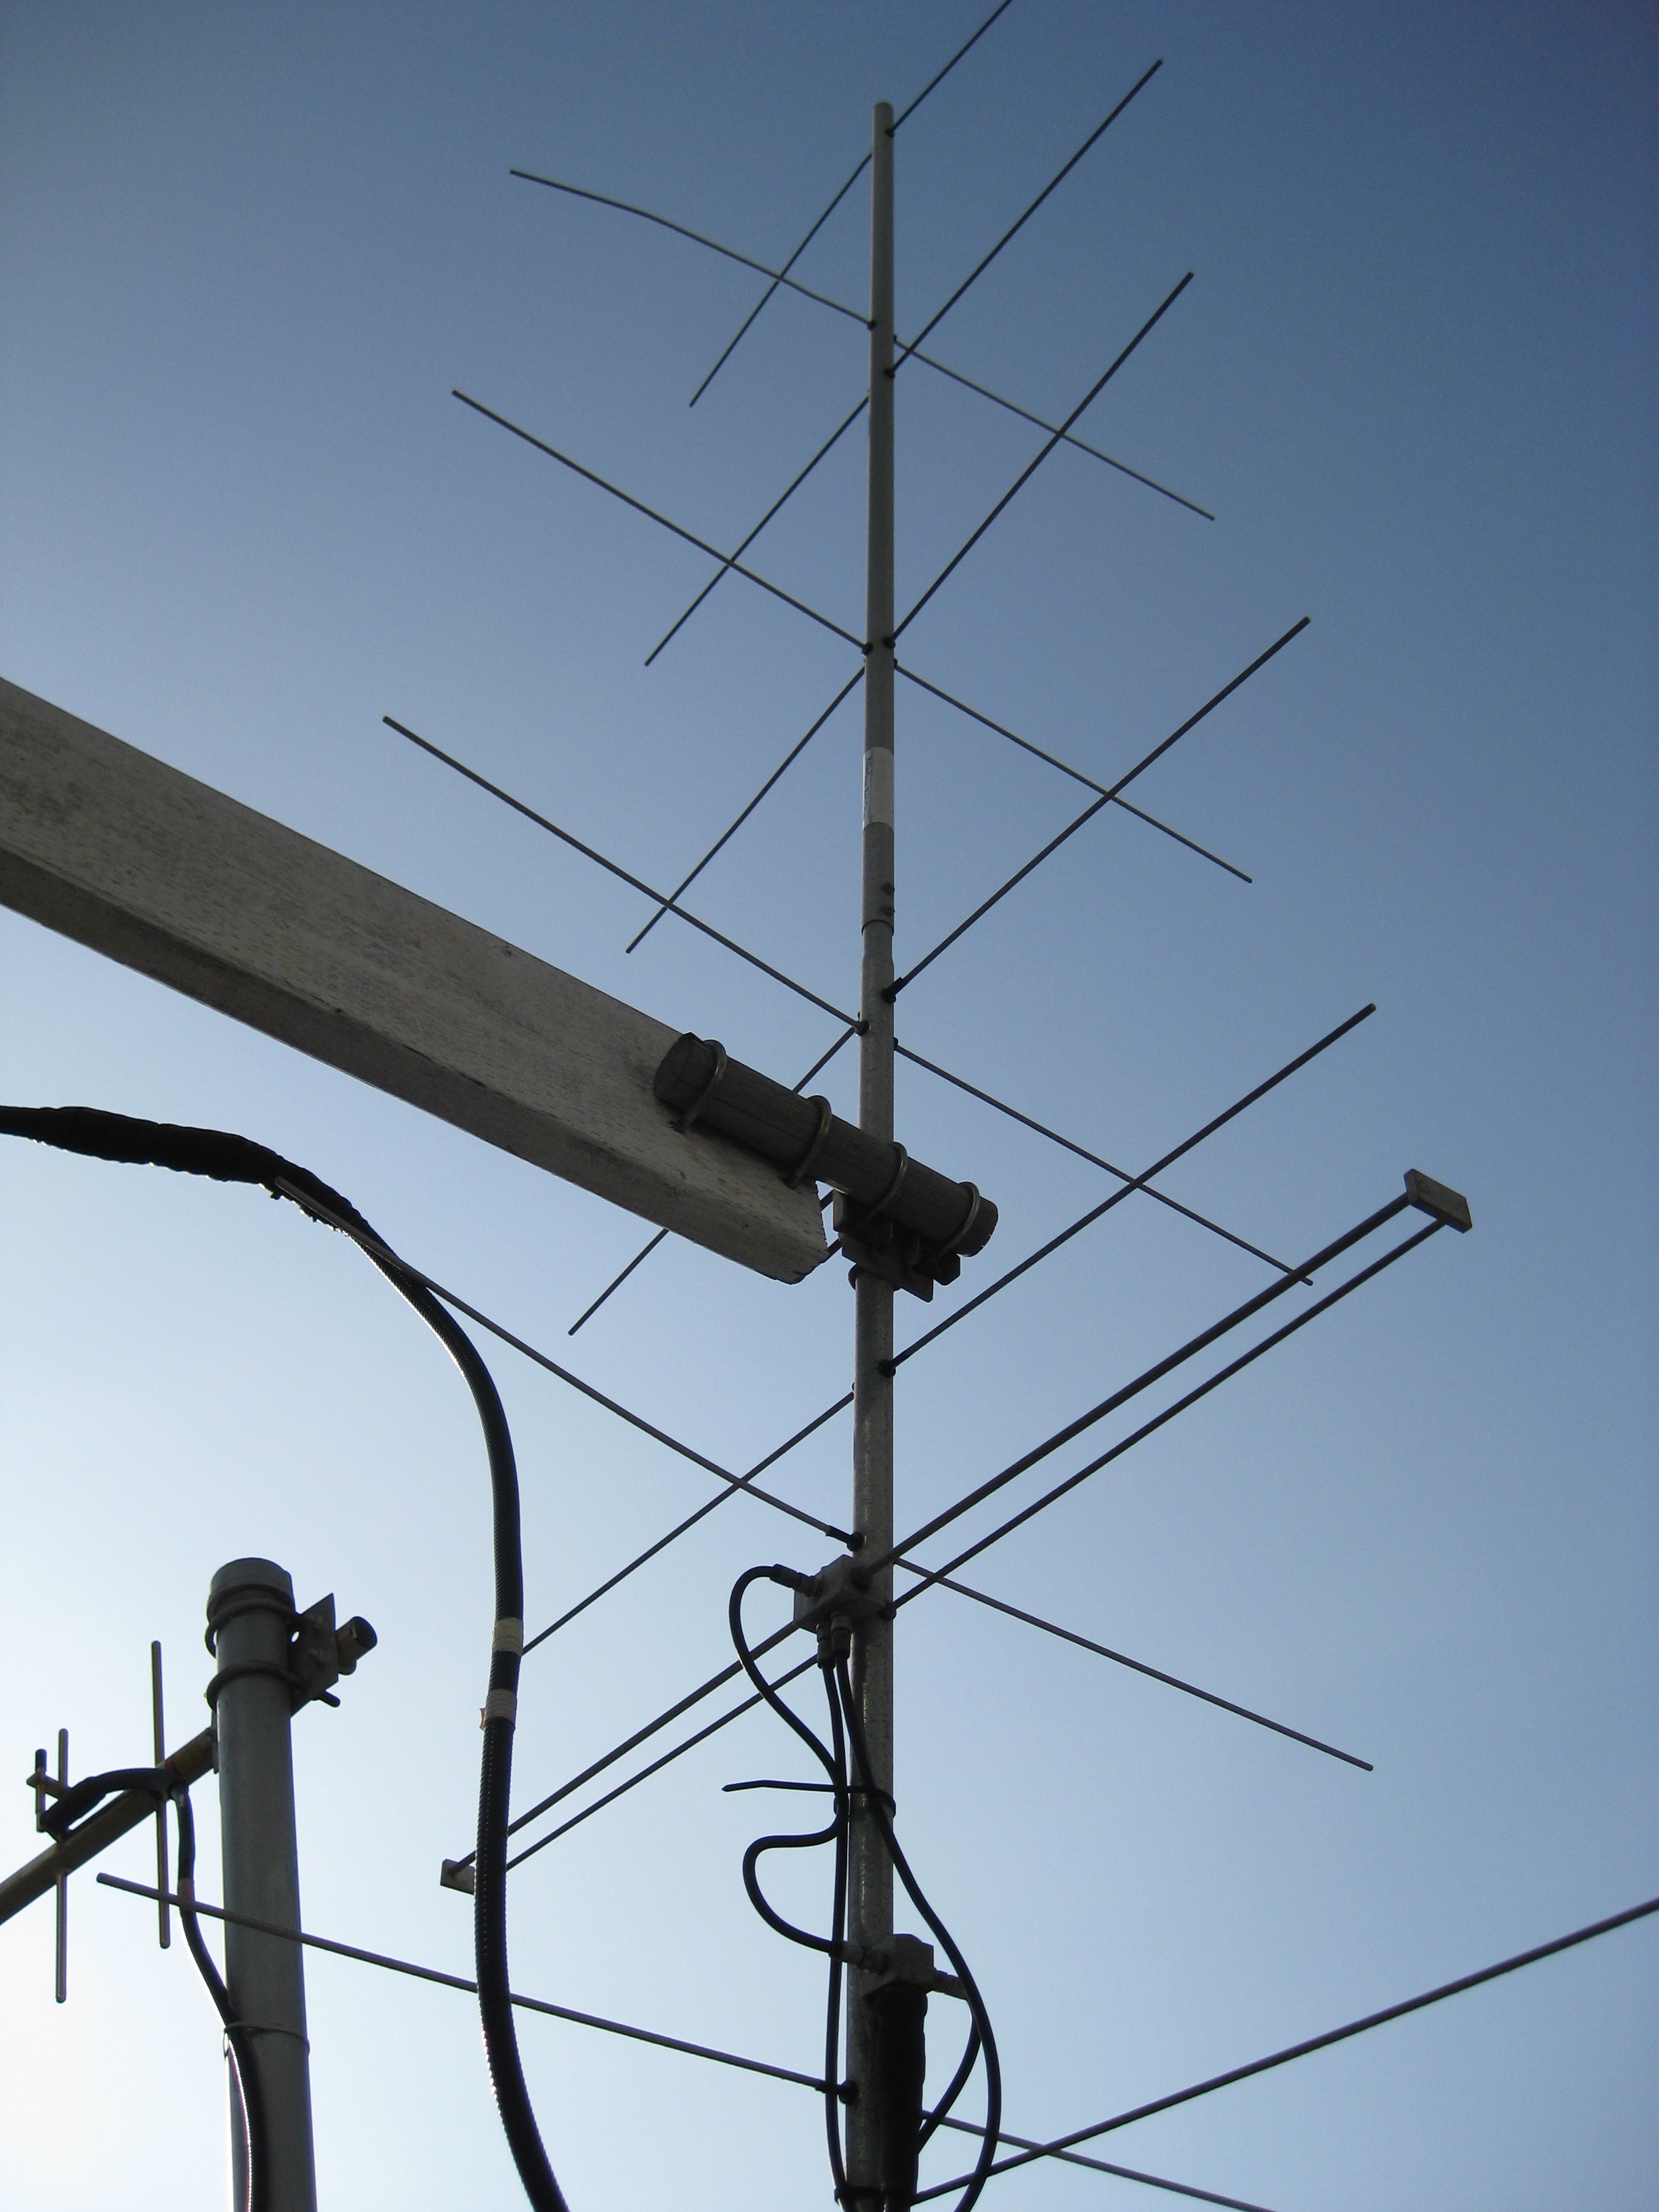 Fileats 3 satellite vhf ground station antennag wikimedia commons fileats 3 satellite vhf ground station antennag greentooth Choice Image